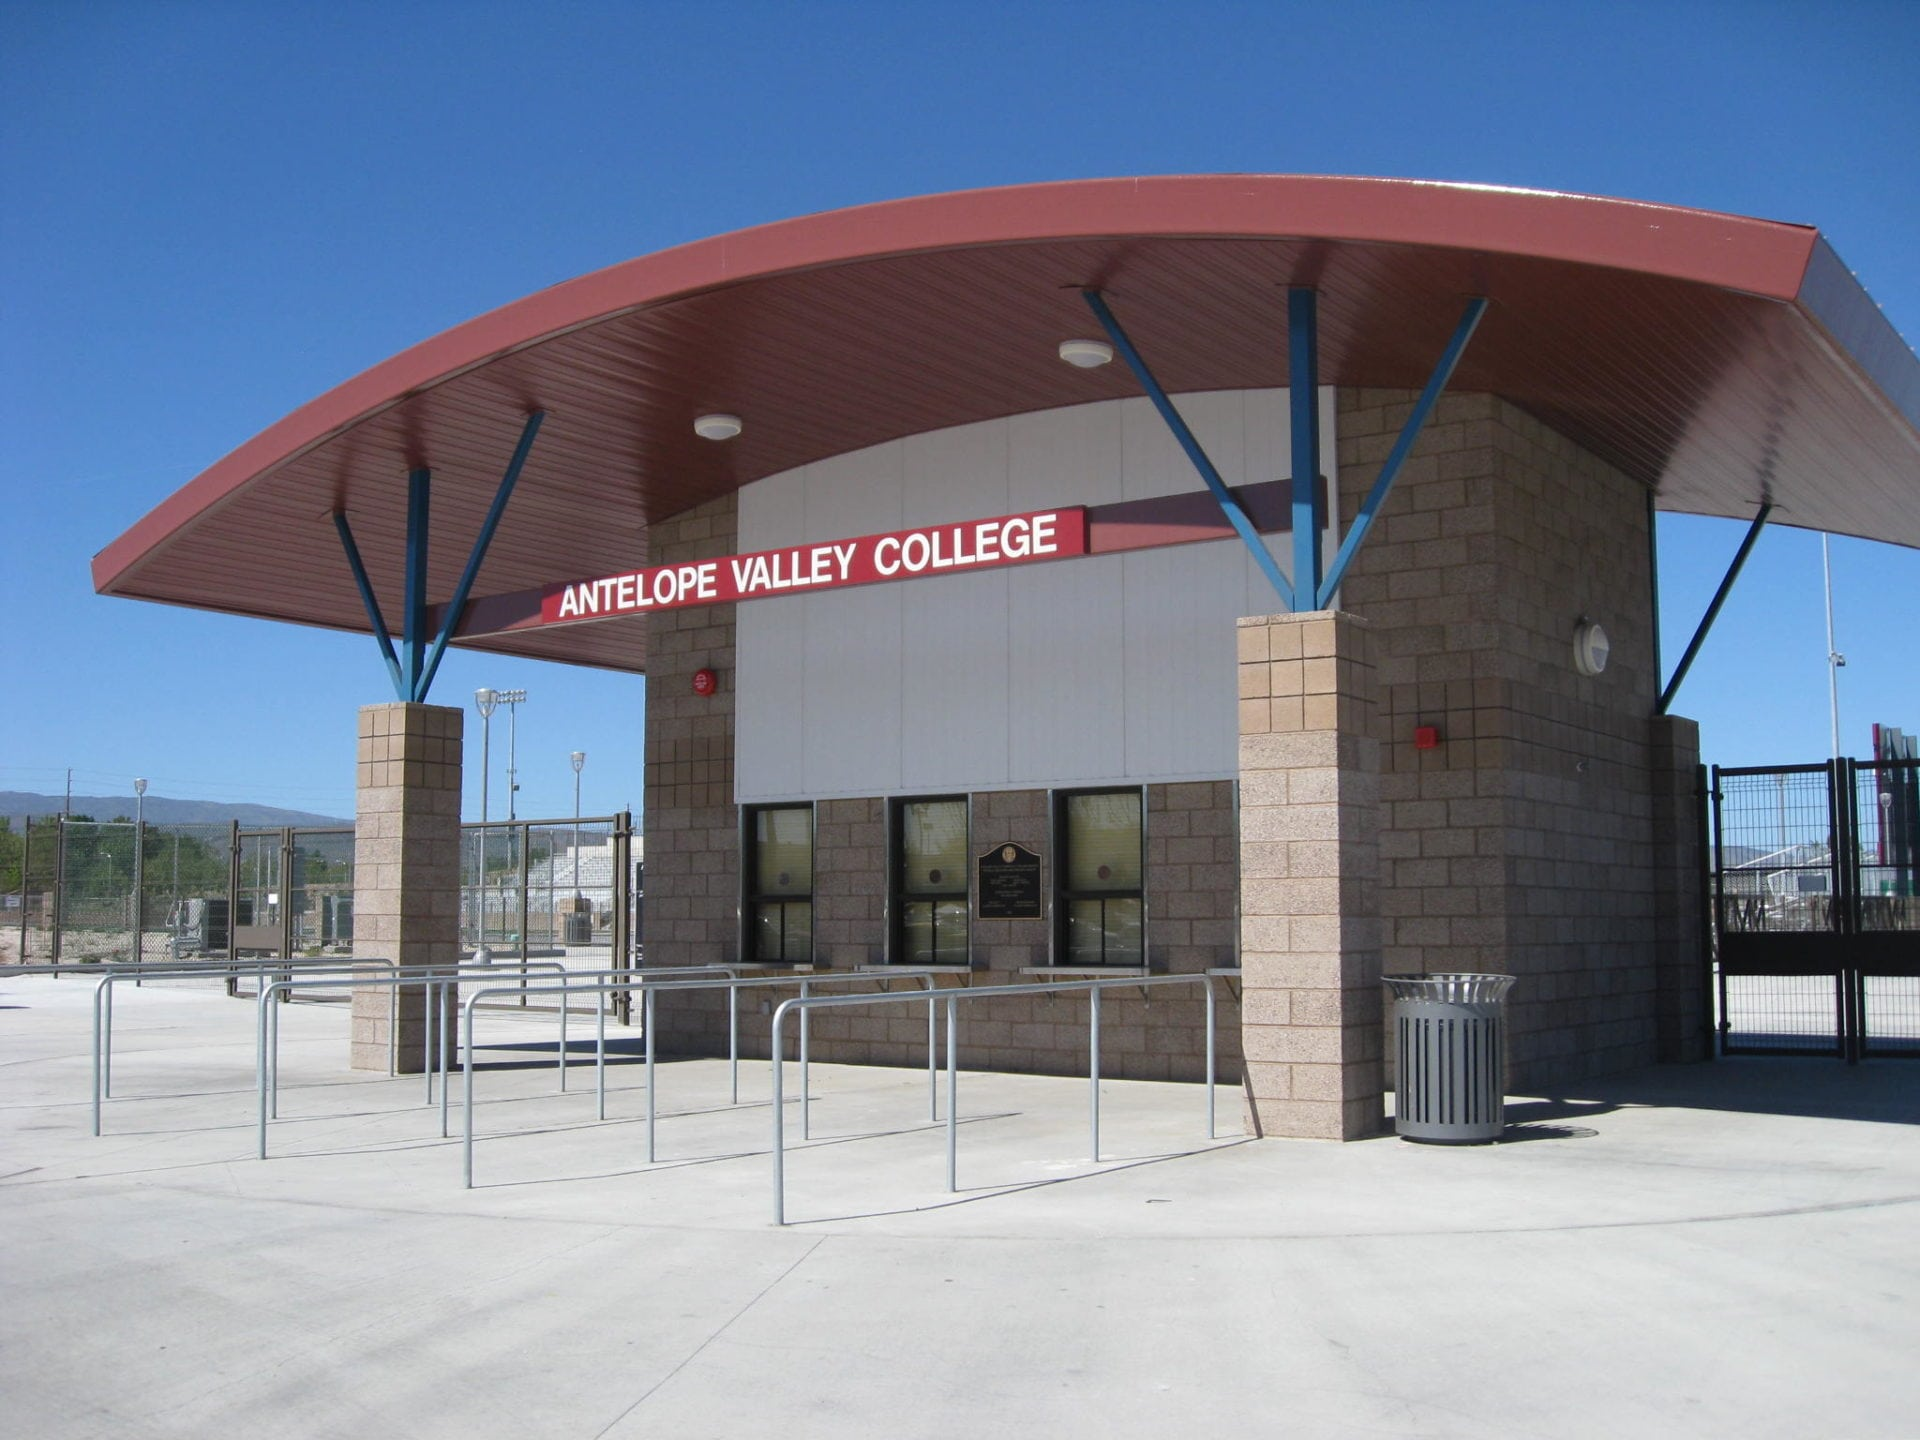 Antelope Valley College - Marauder Stadium Ticket Booth